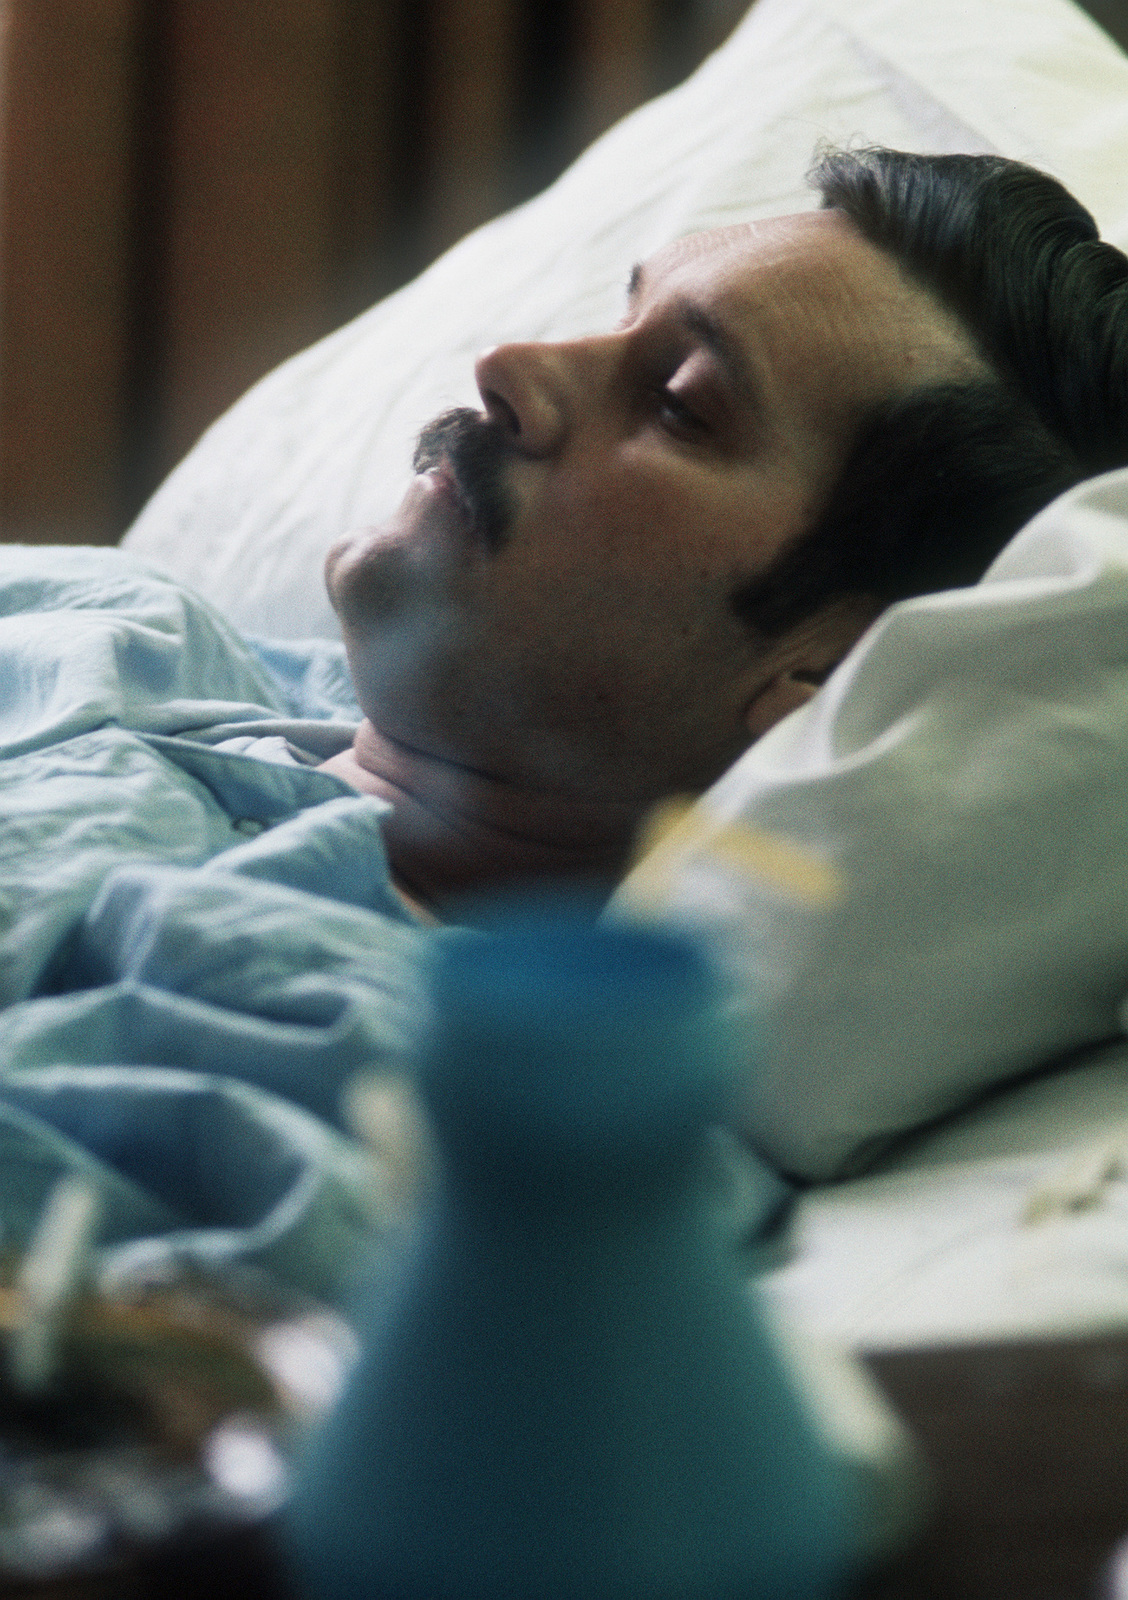 Former POW and U.S. Air Force SSGT Roy Madden Jr. in his hospital bed at the Grant Medical Center. SSGT Madden was captured on 22 Dec 72 and released by the North Vietnamese in Hanoi on 12 Feb 73